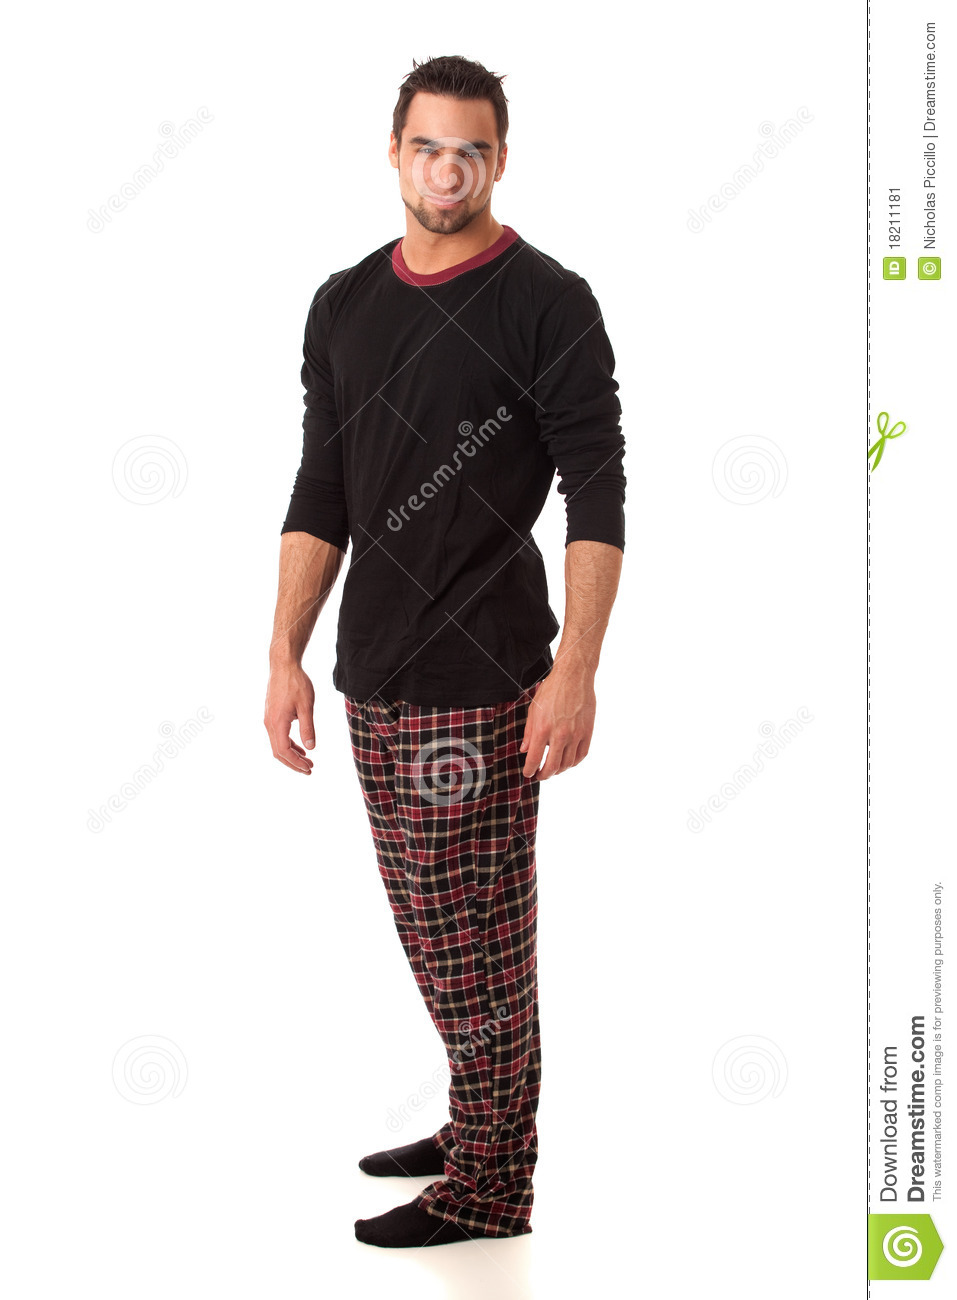 This Shirt Because I Was I Wear It As Pjs All The Time: Man In Pajamas Stock Image